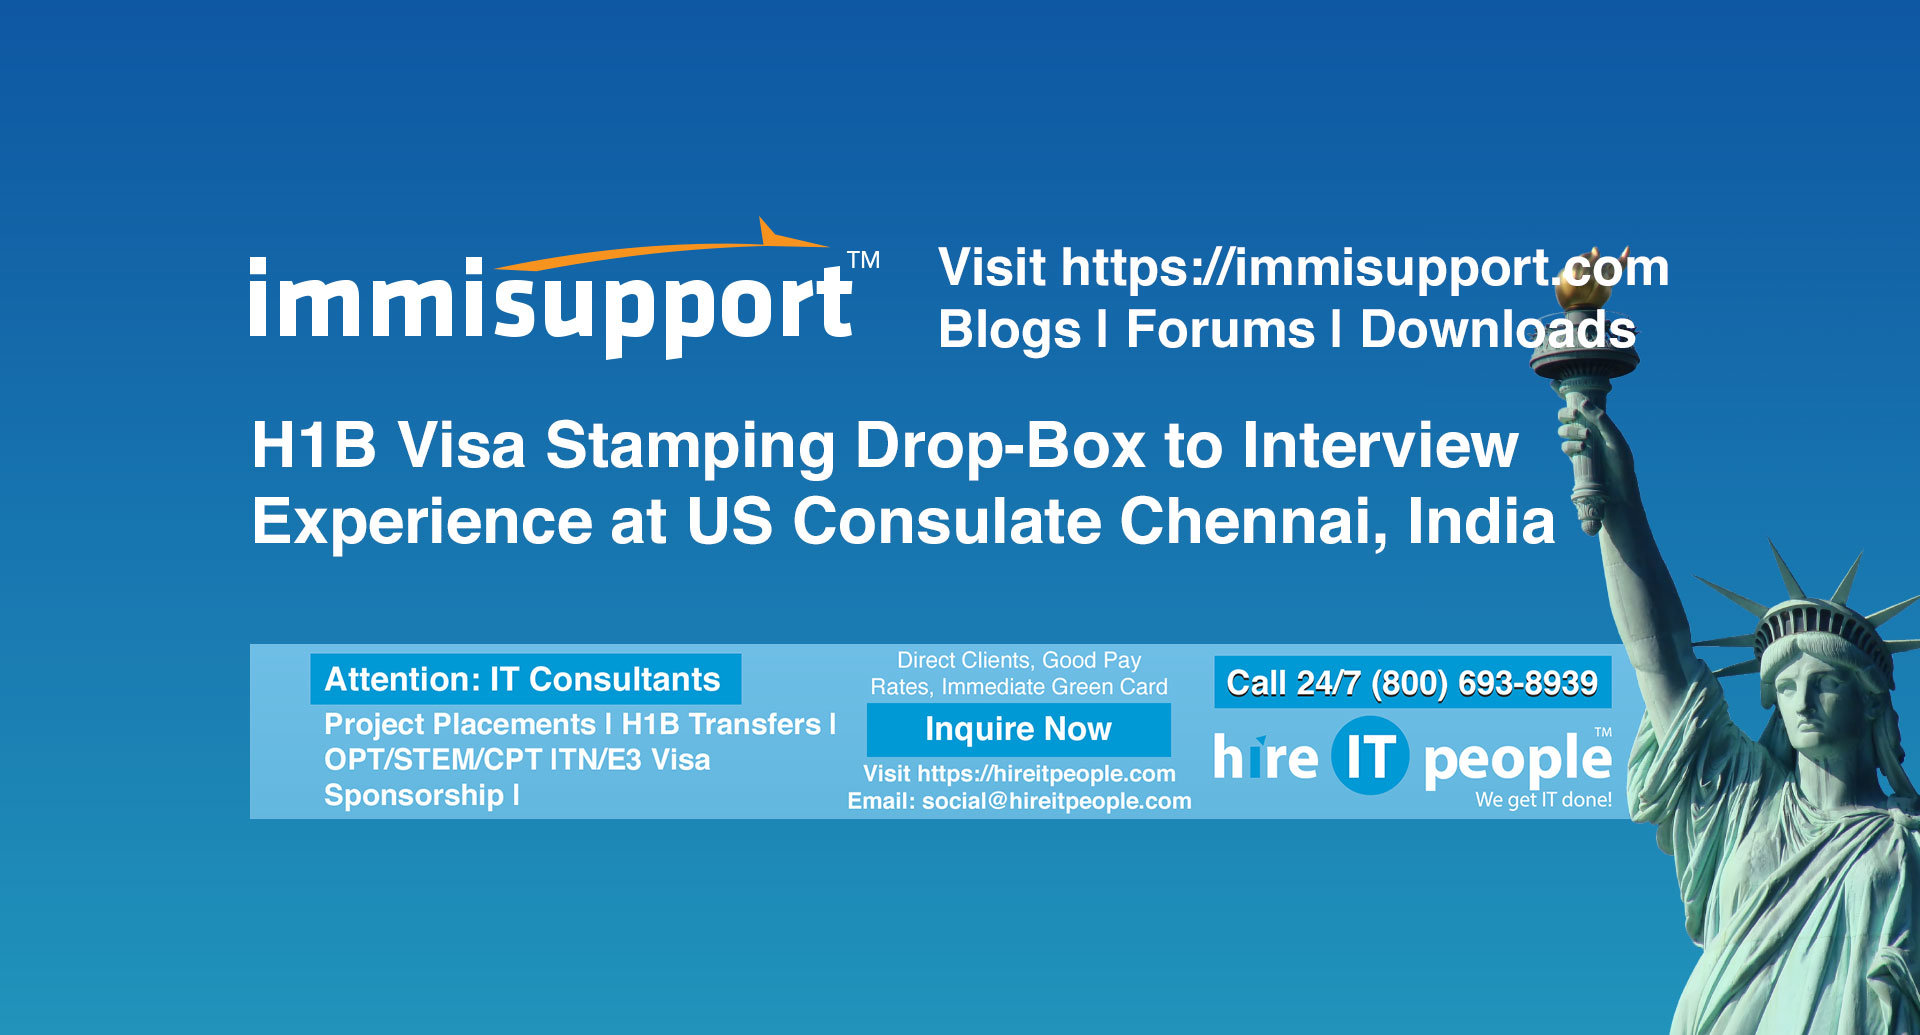 H1B Visa Stamping Drop-Box to Interview Experience at US Consulate Chennai, India